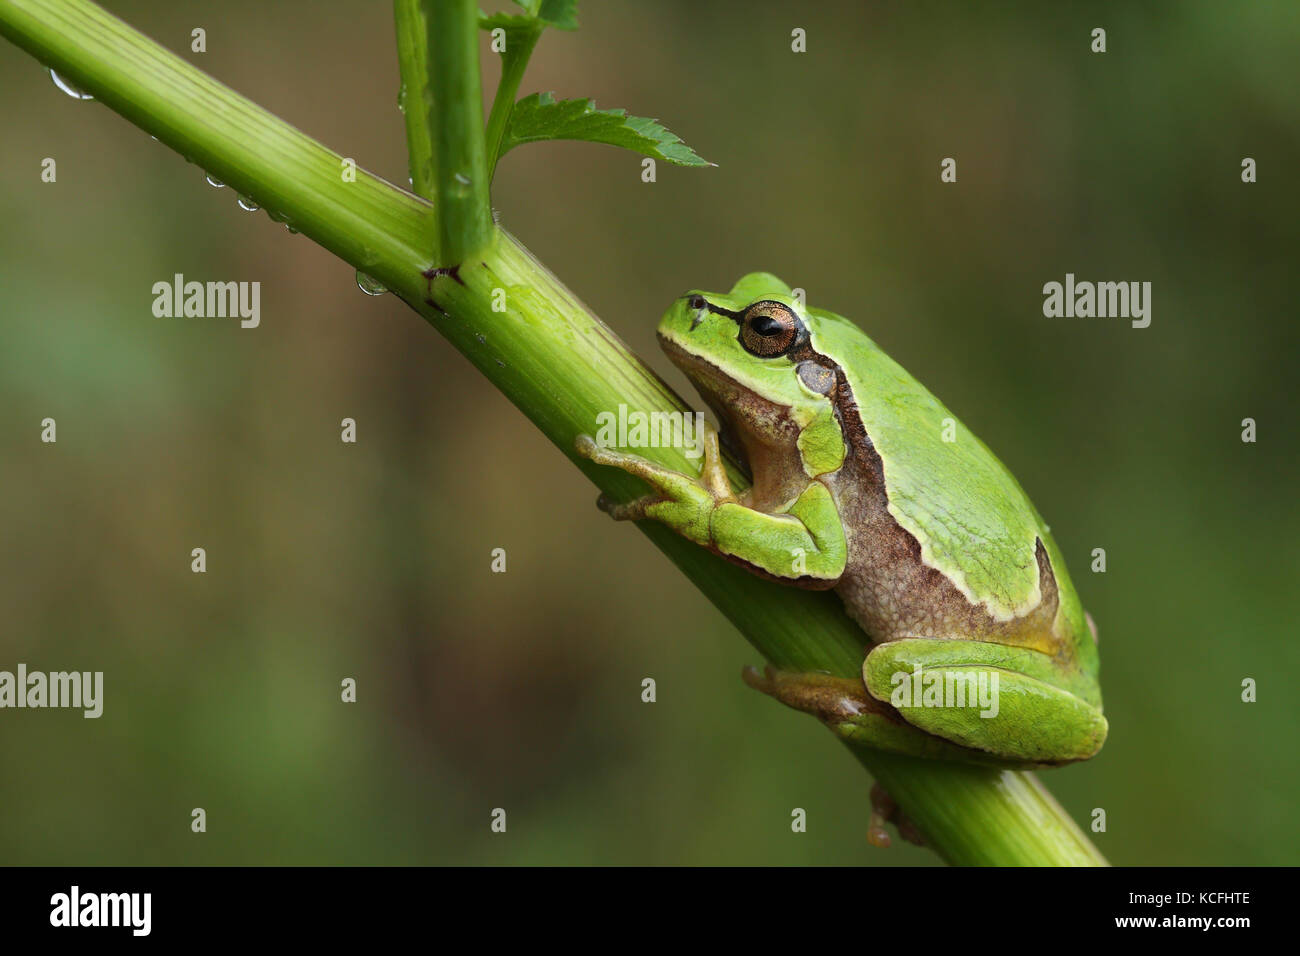 European tree frog (Hyla arborea) on a green plant - Stock Image